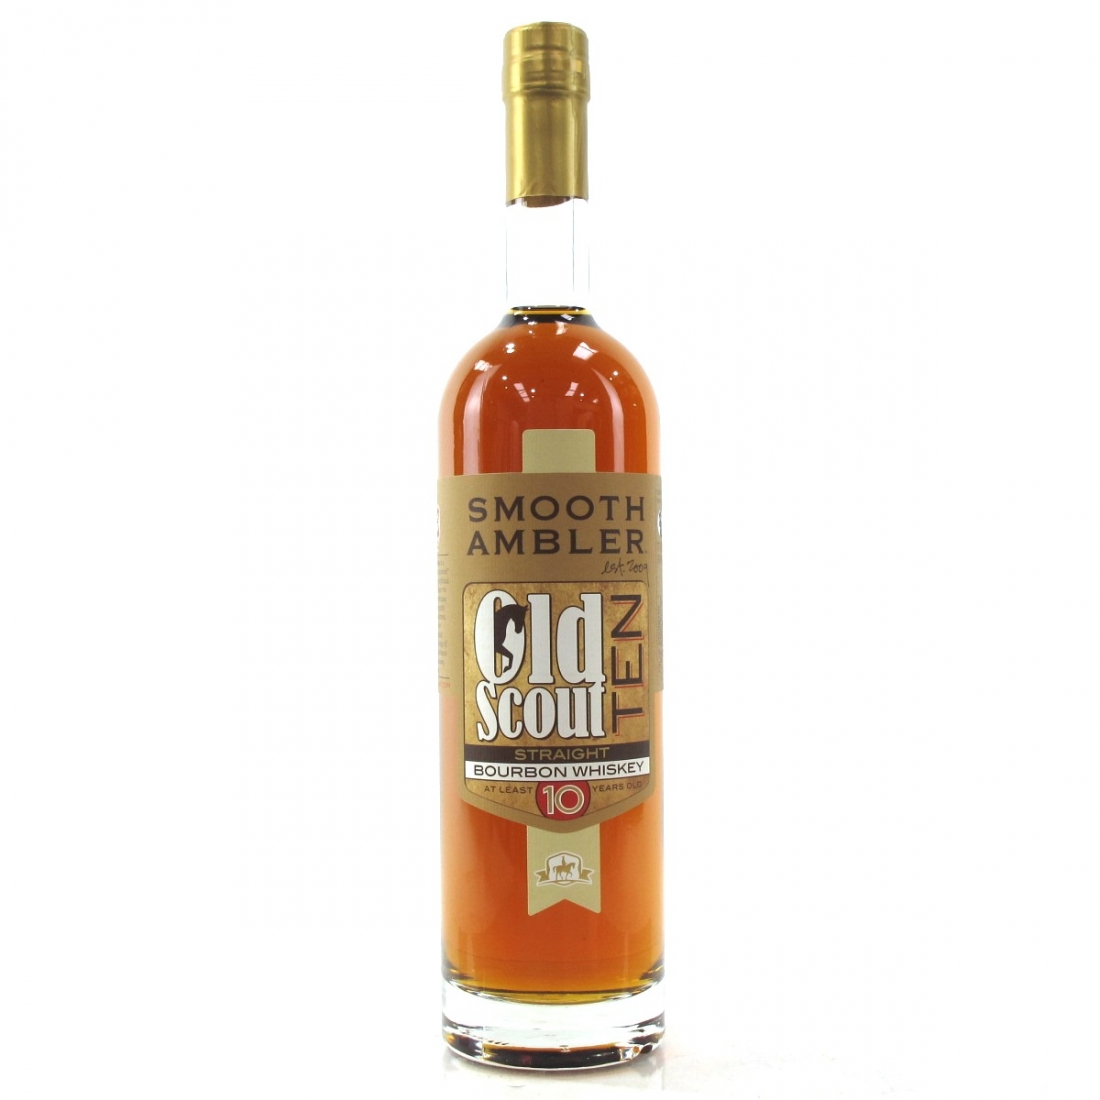 Smooth Ambler Old Scout 10 Year Old Straight Bourbon